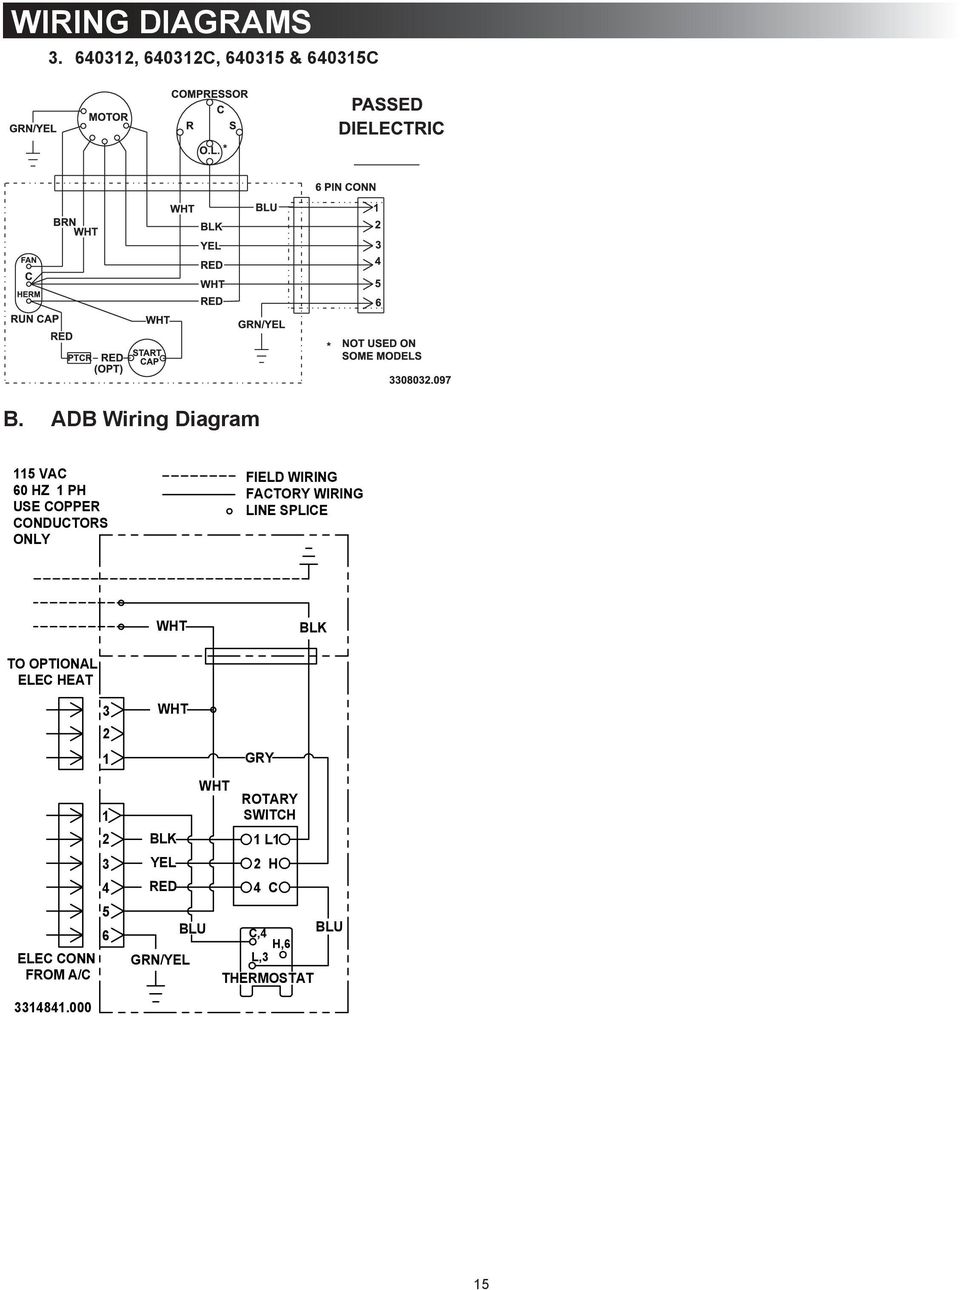 Dometic 640312 Manual Psc0 Laptop Toshiba Wiring Diagram Array Air Conditioner B Pdf Rh Docplayer Net